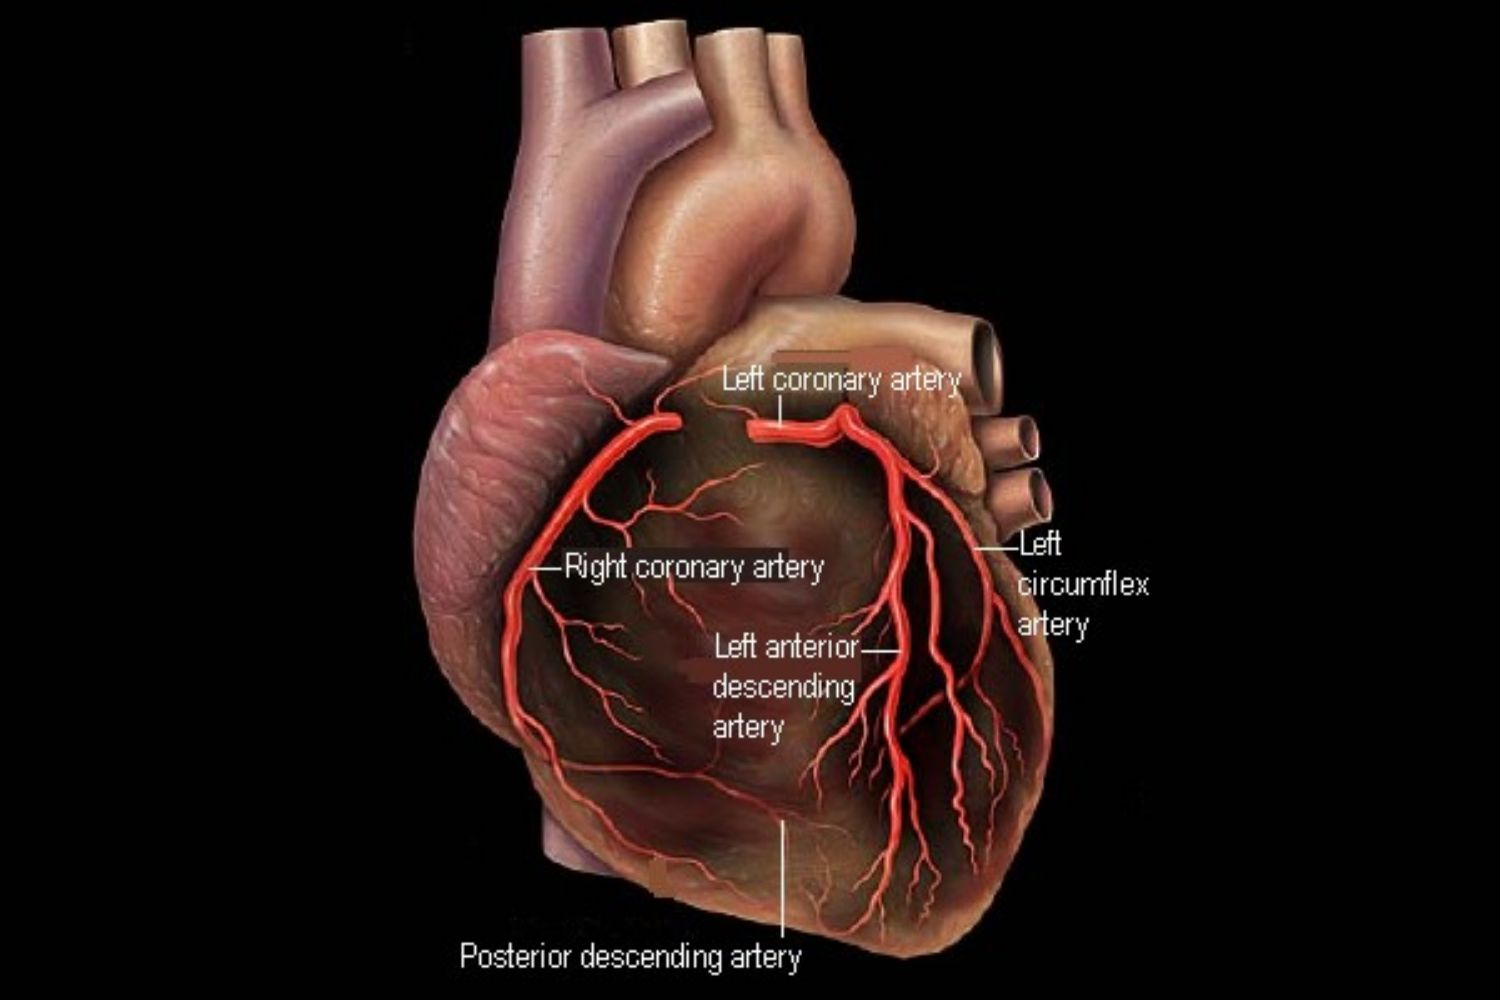 coronary arteries diagram branches hydraulic pump motor wiring and heart disease